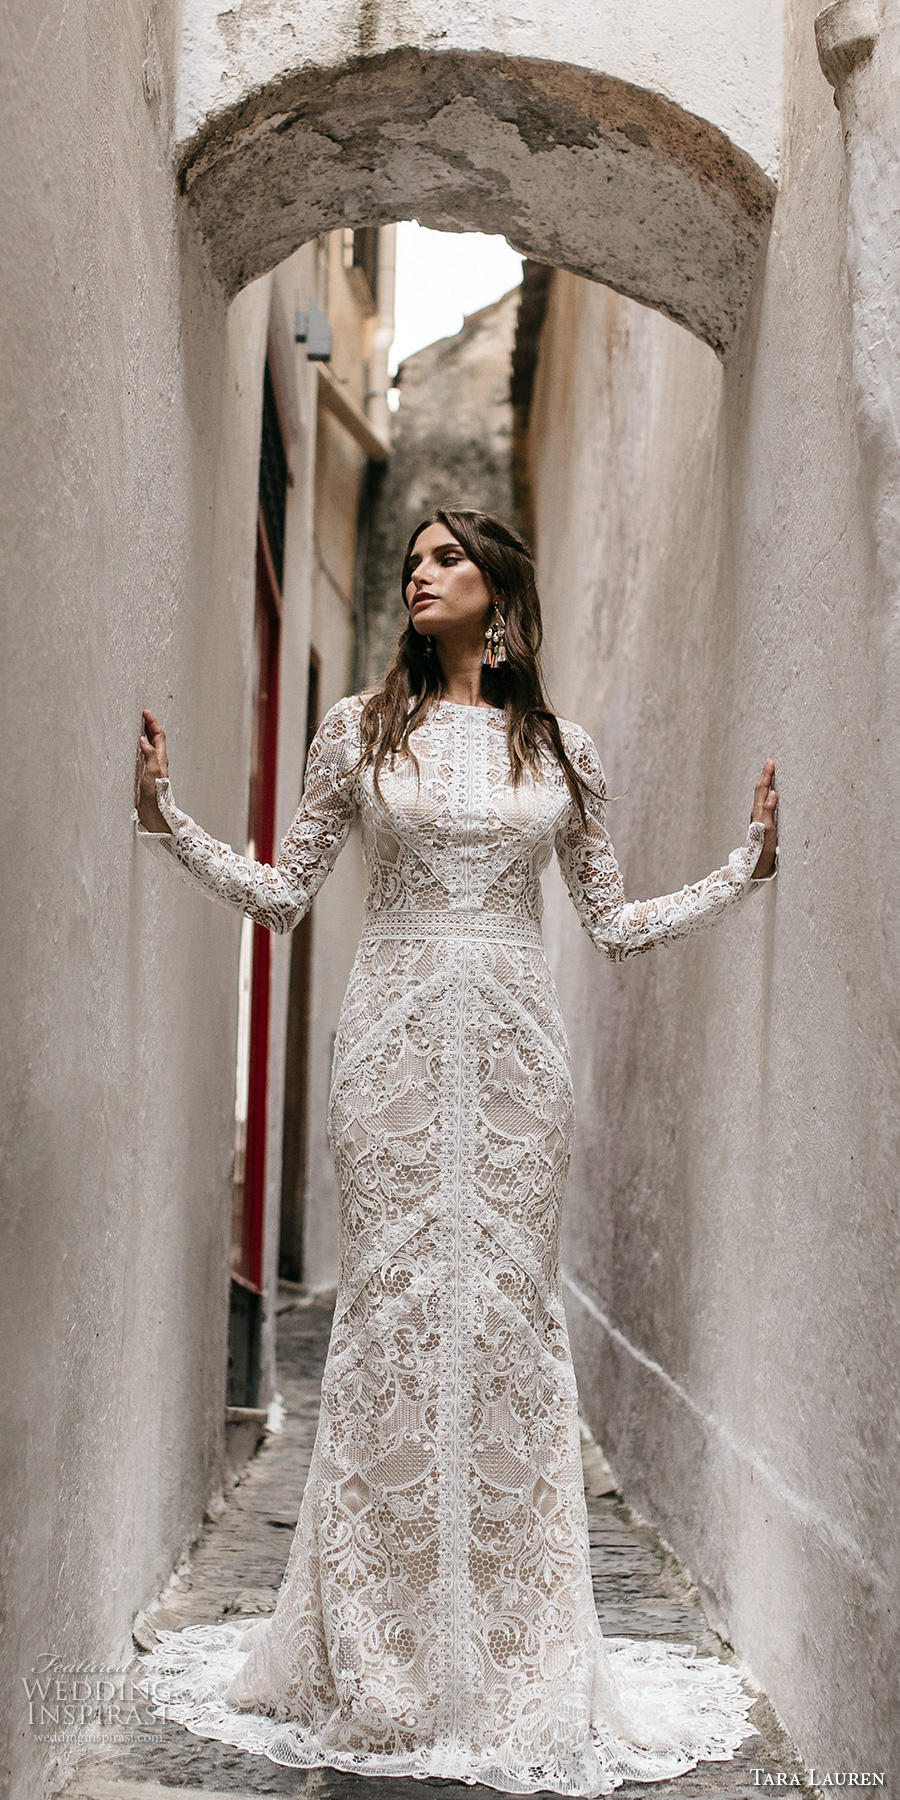 Tara Lauren Spring 2017 Bridal Long Sleeves Jewel Neck Full Embroidered Elegant Bohemian Lace Trumpet Sheath